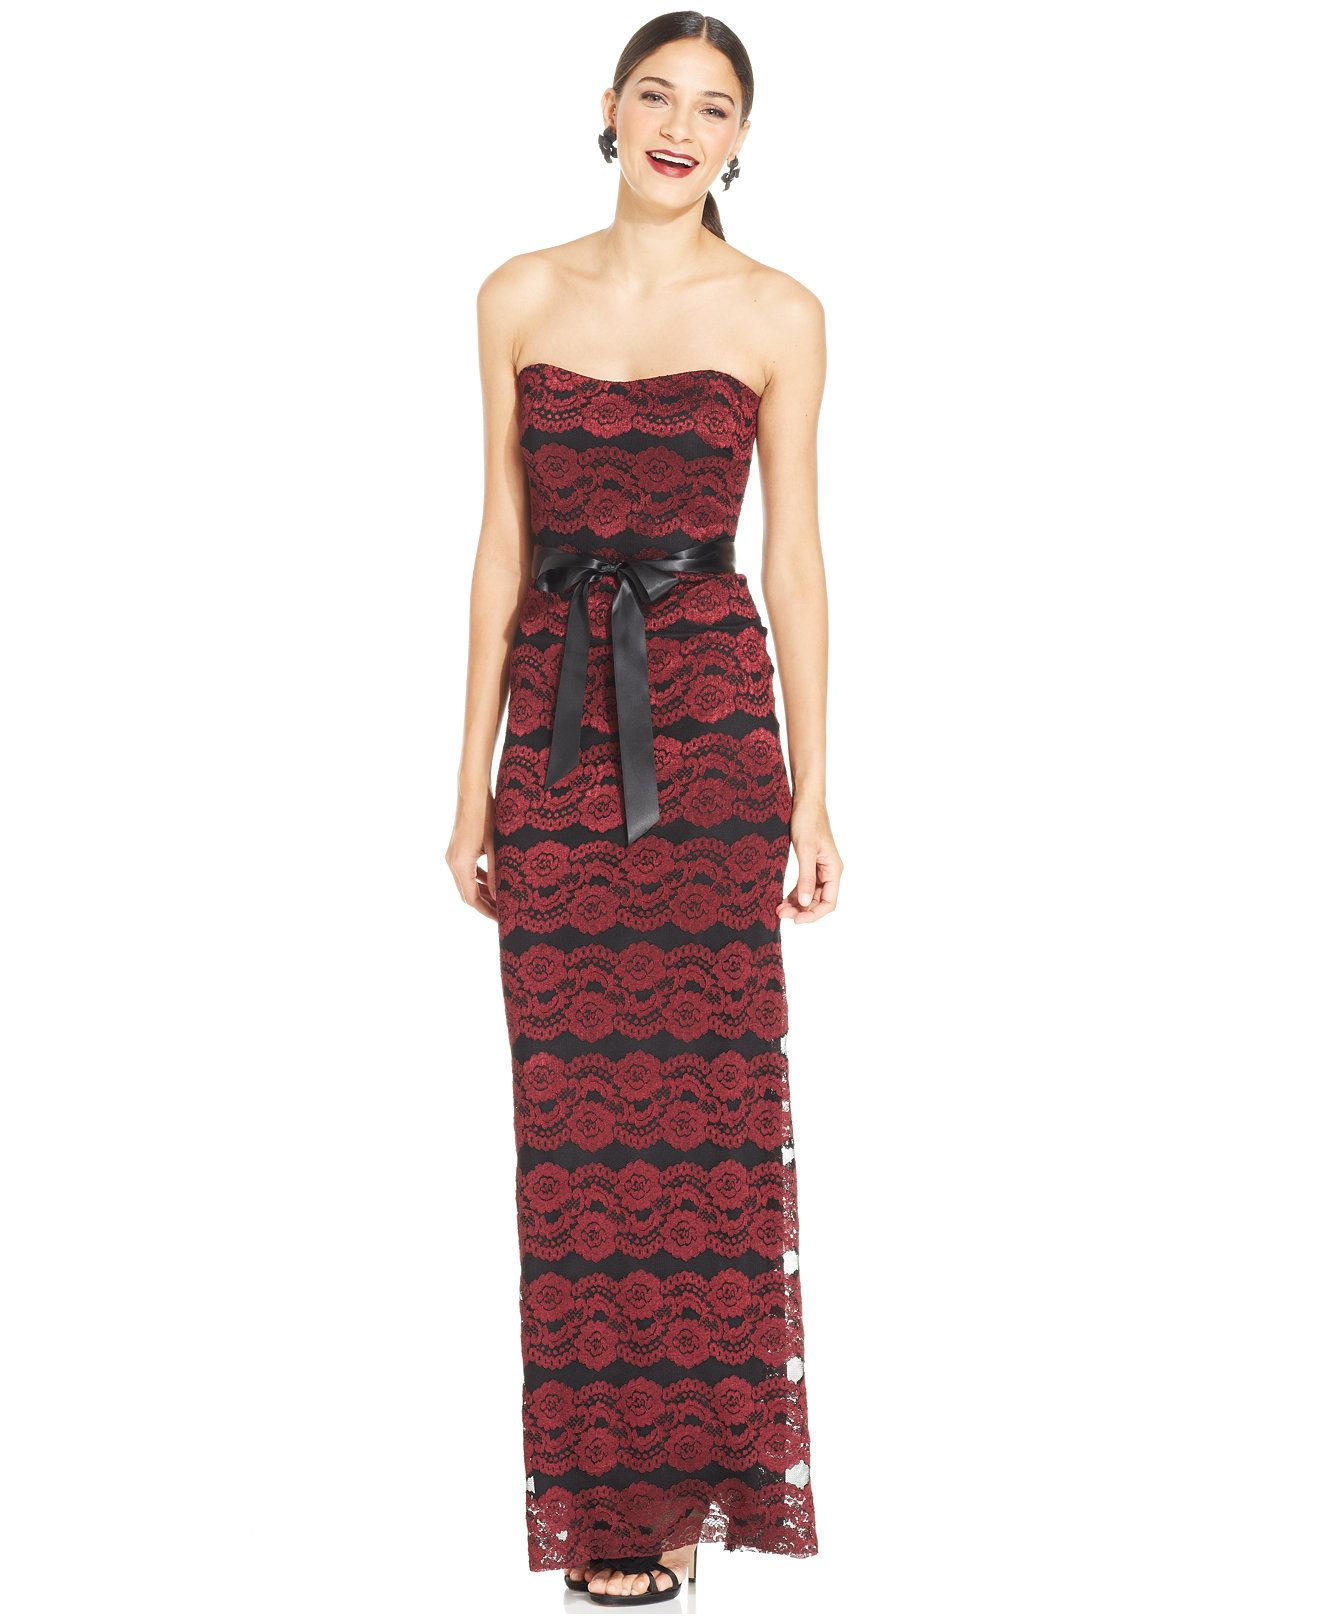 dda16386f Xscape Strapless Floral-Lace Belted Gown - Clearance - Women - Macy s